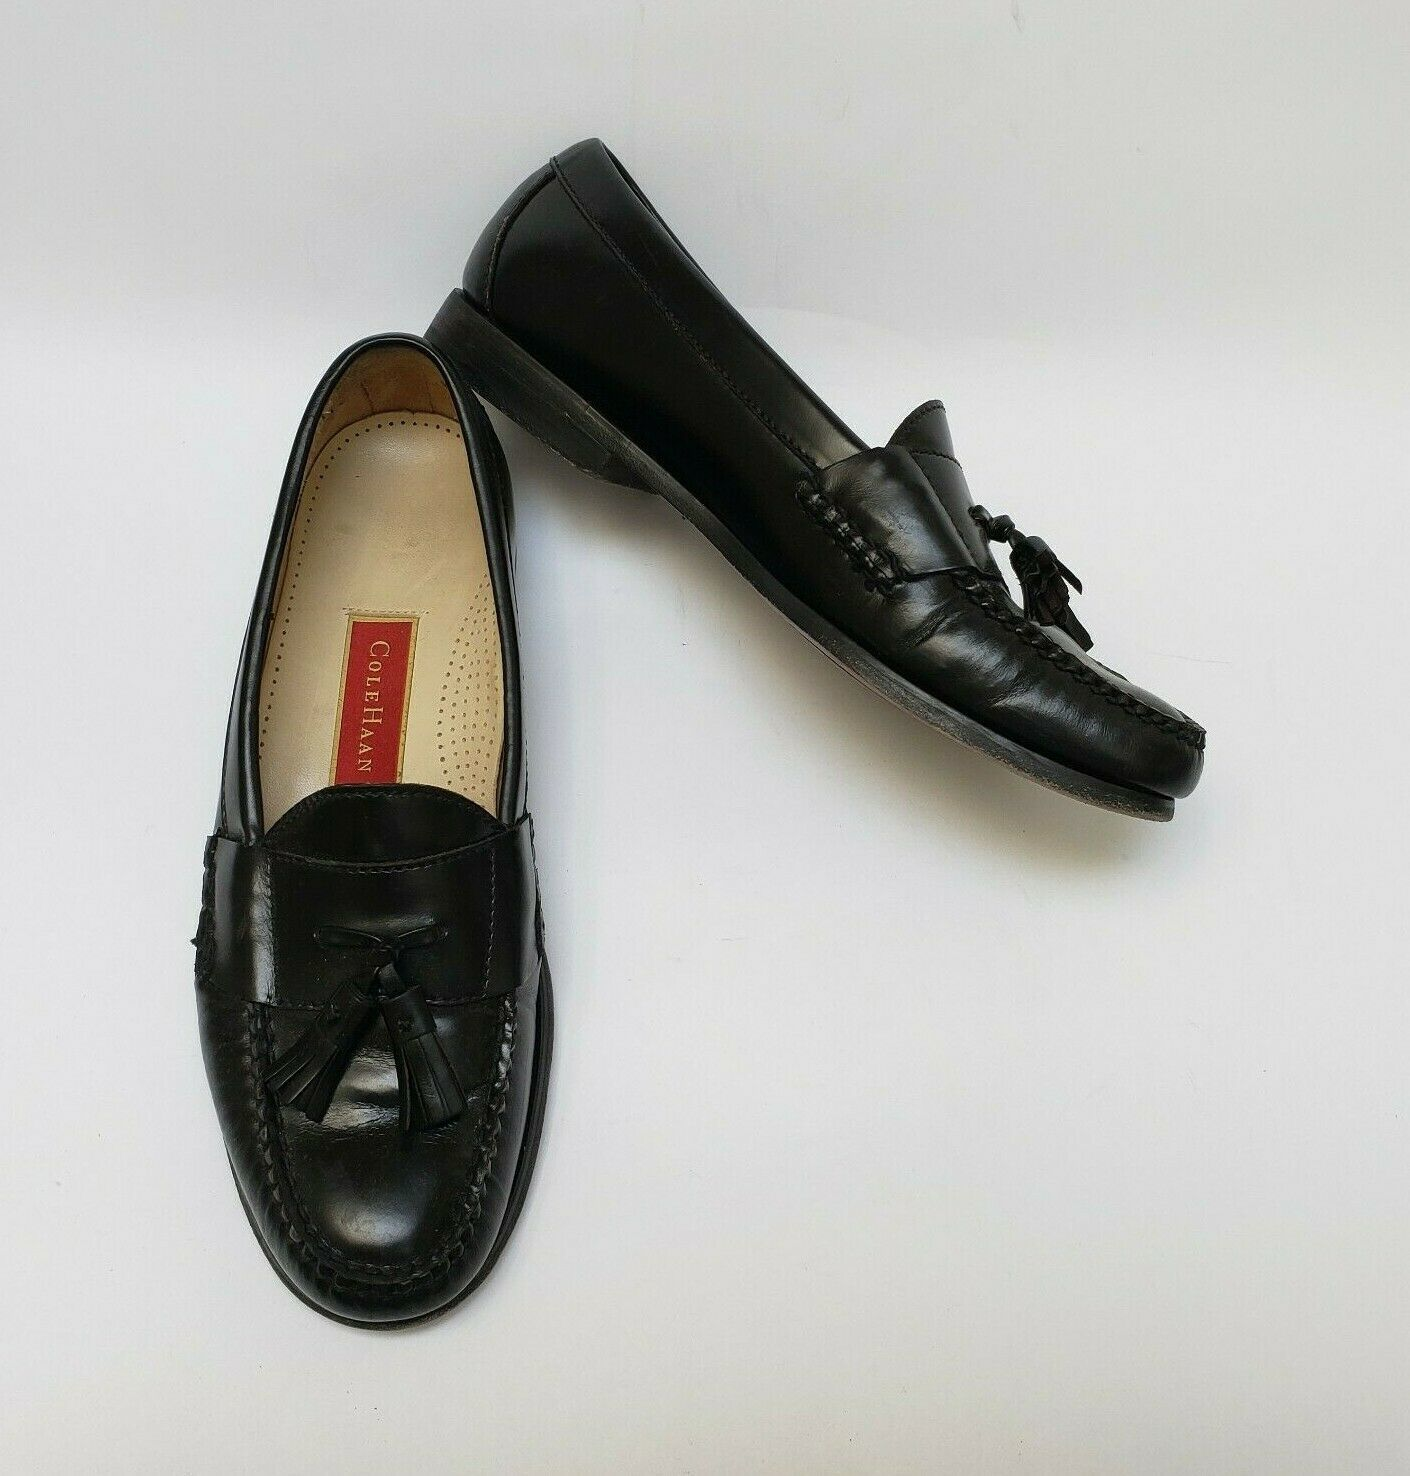 Primary image for Cole Haan Mens Shoes Black Loafers Tassel Slip On Size 9 B